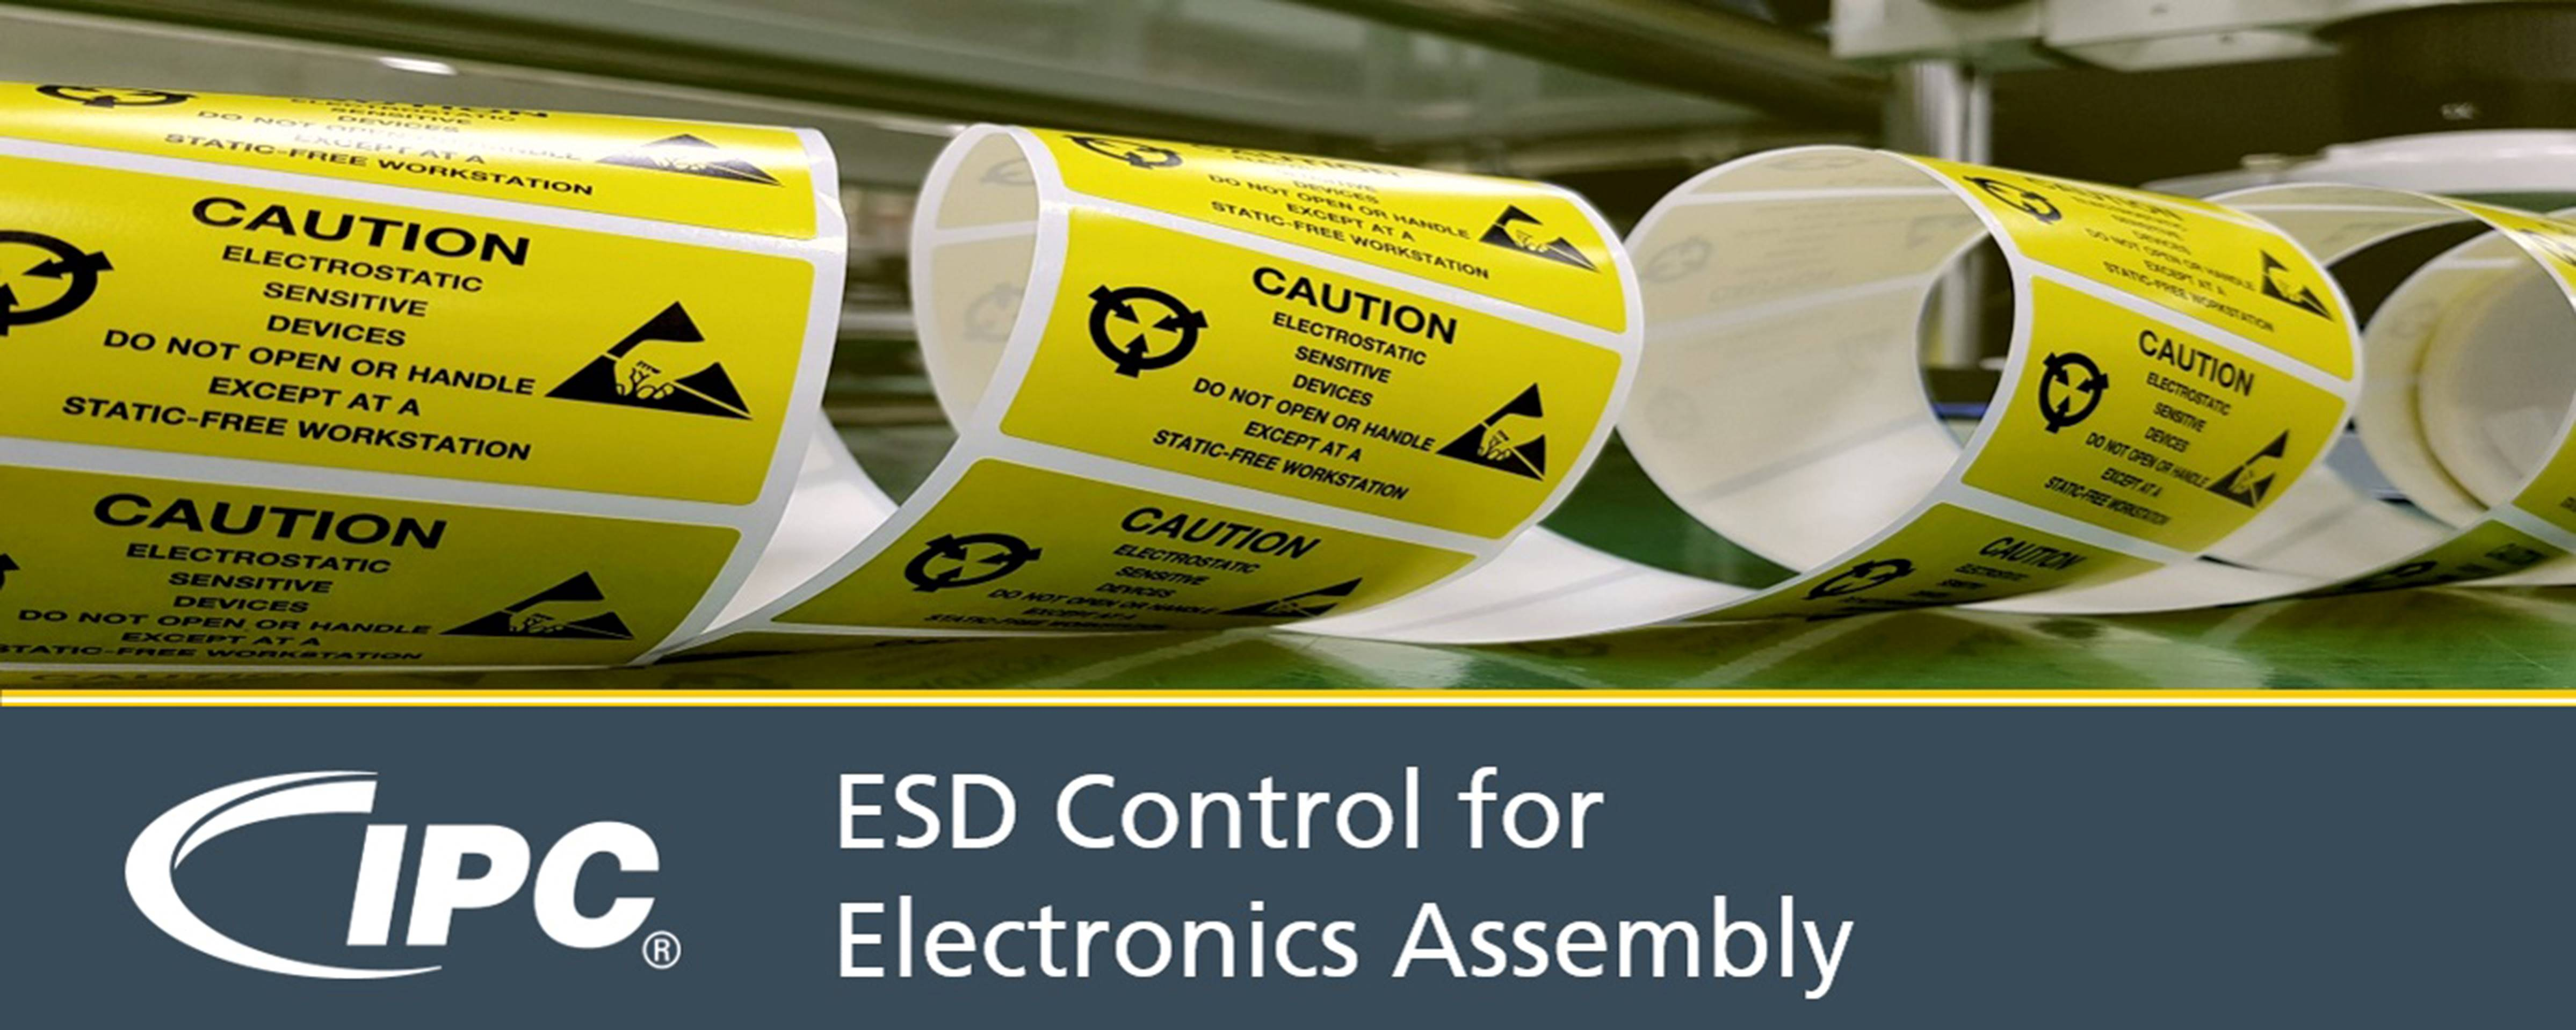 ESD Control for Electronics Assembly-4th quarter 2019